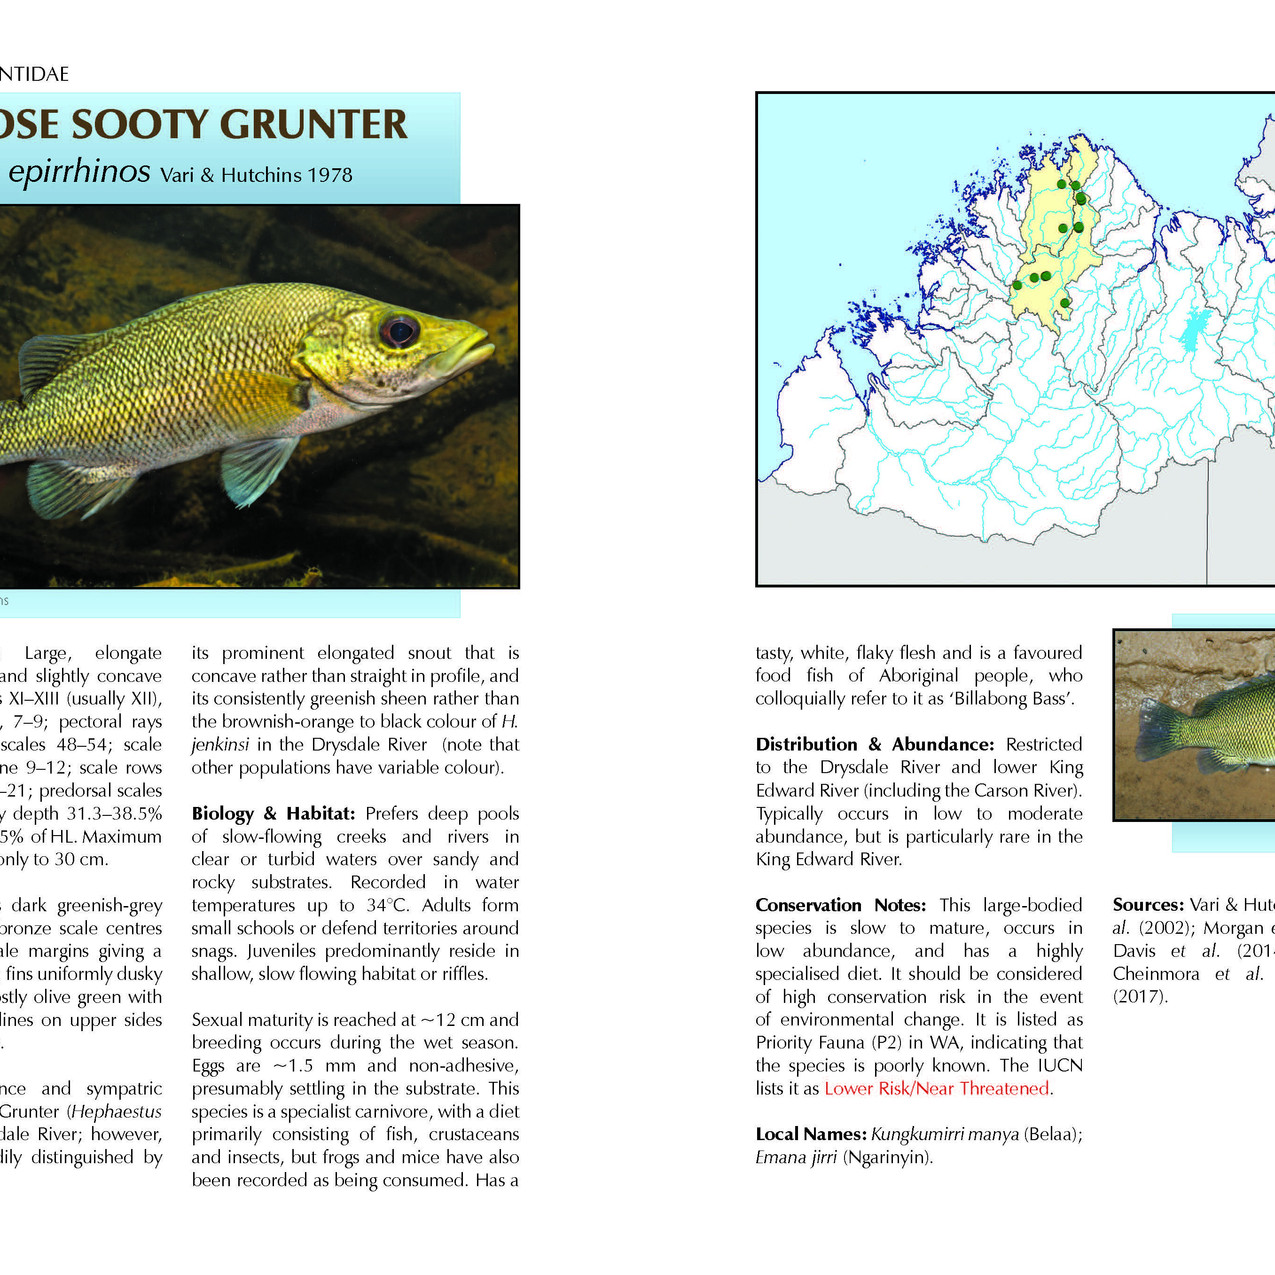 Sample – species account of the Longnose Sooty Grunter, a fish endemic to the Kimberley